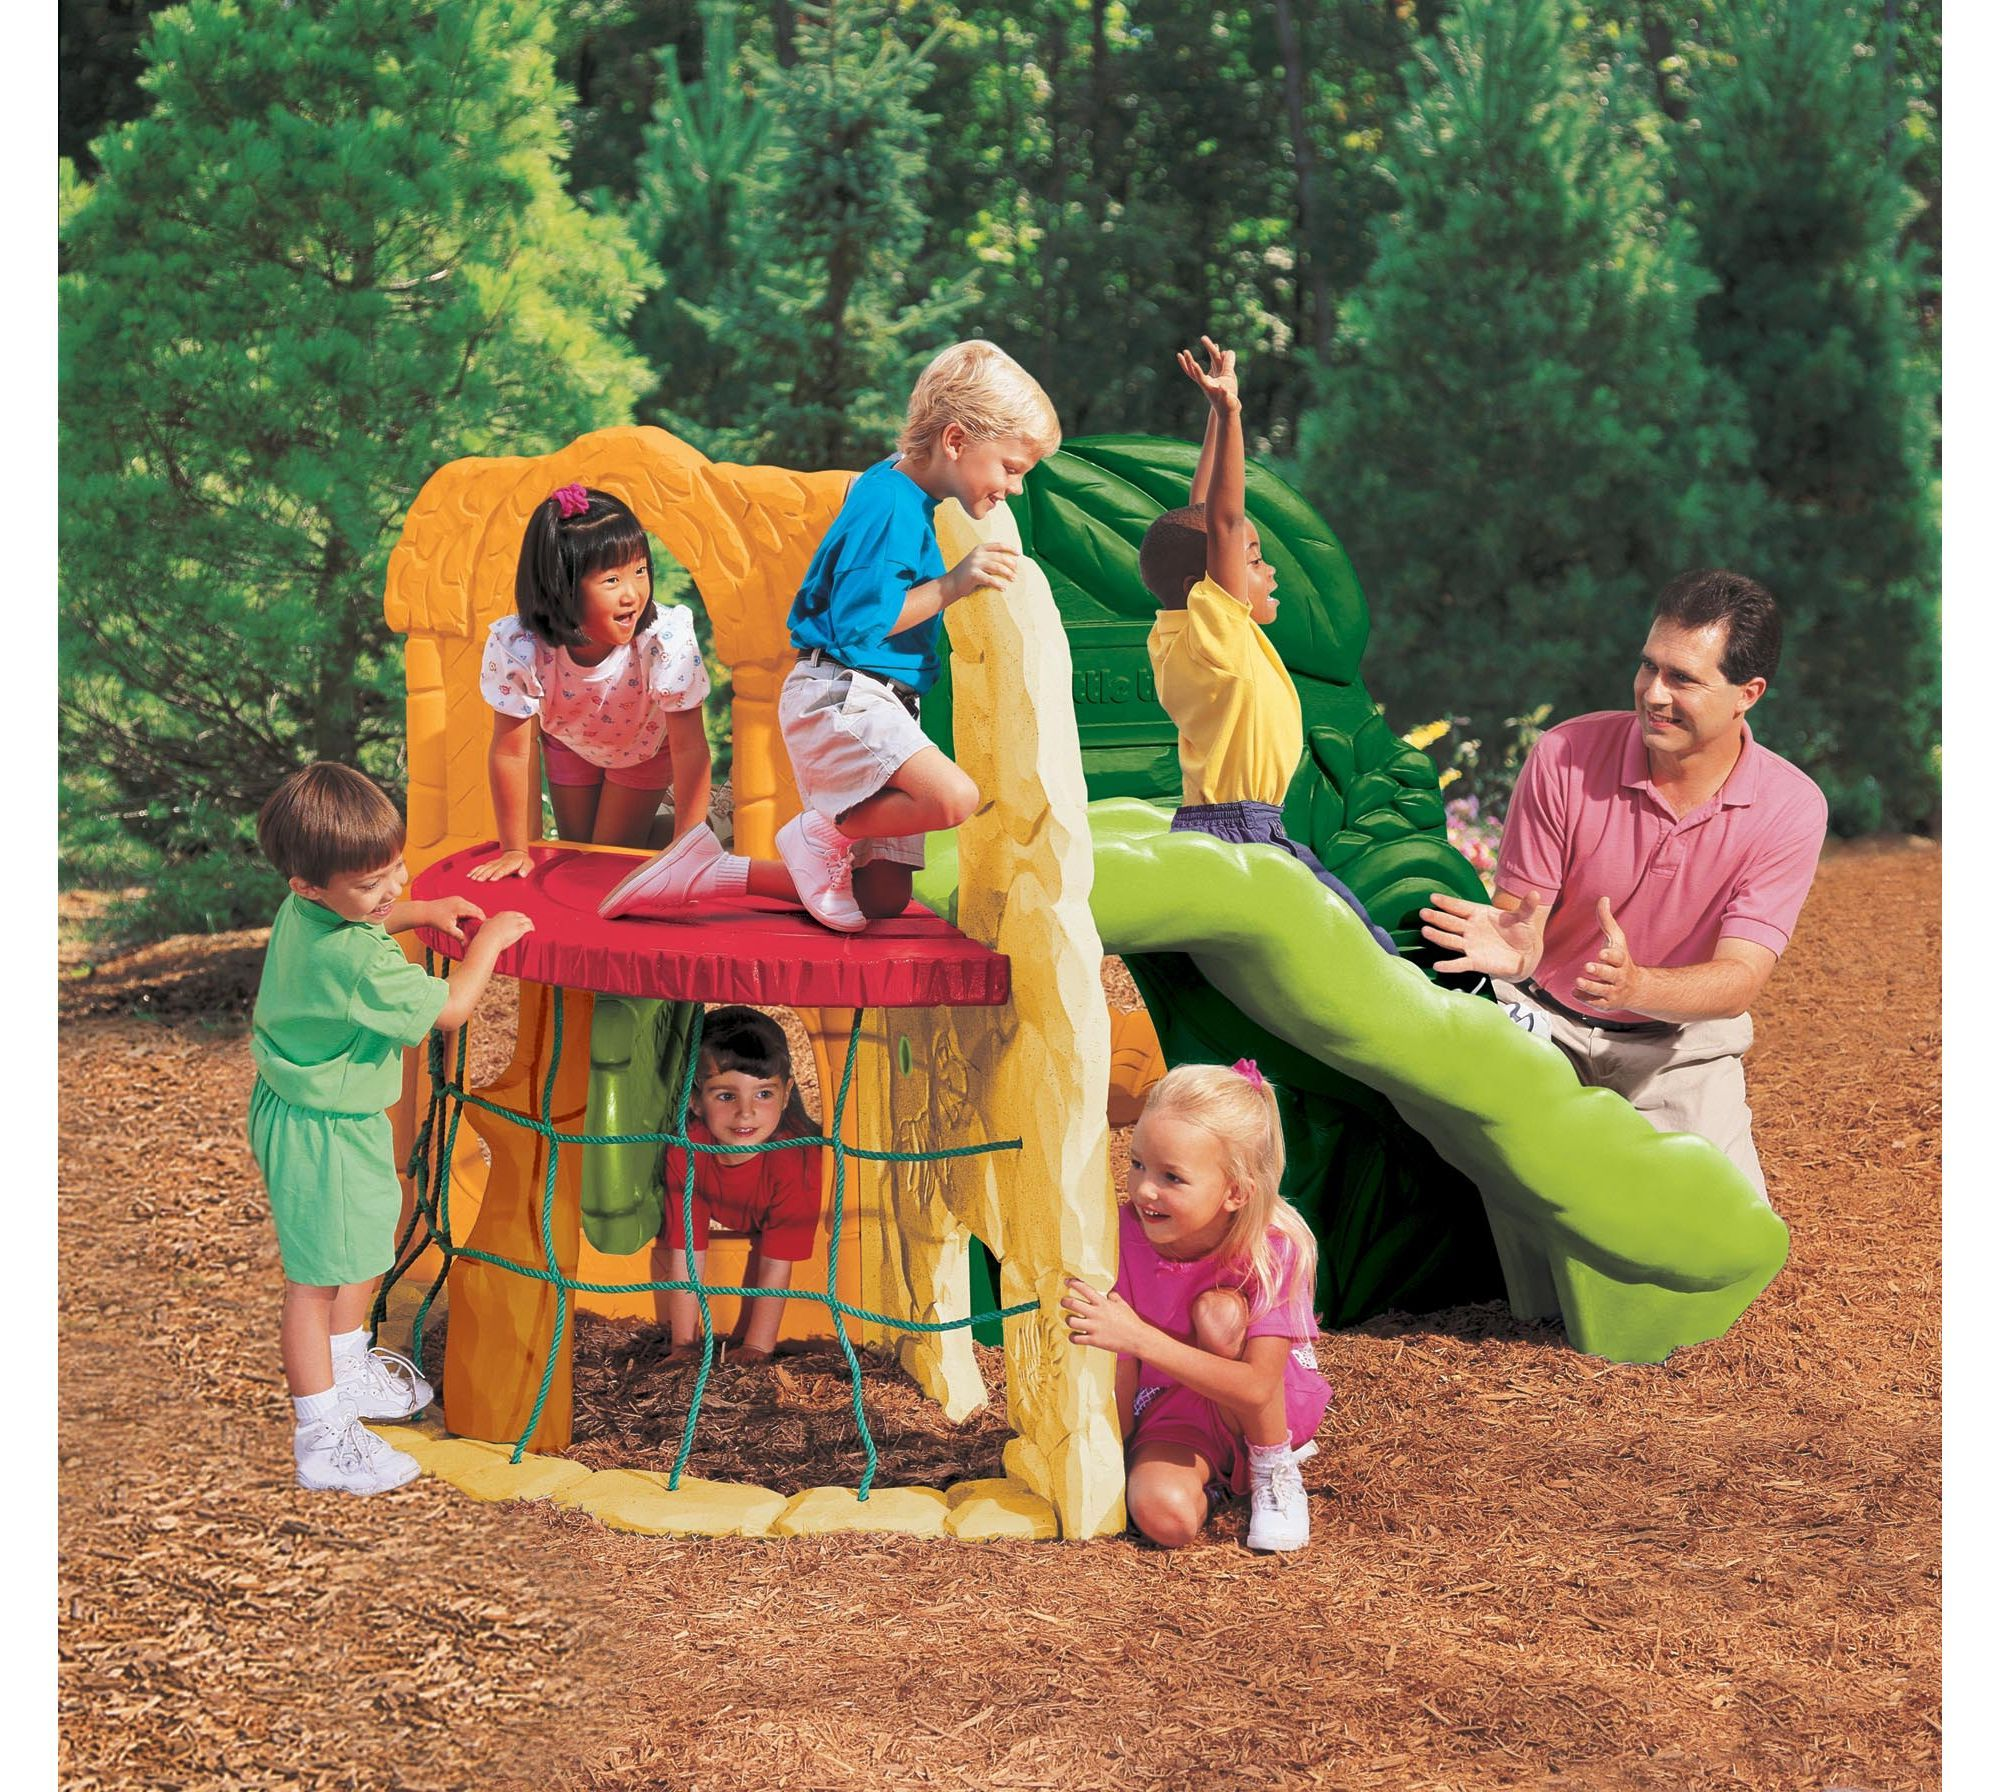 Little Tikes Jungle Climber Little tikes, Outdoor play